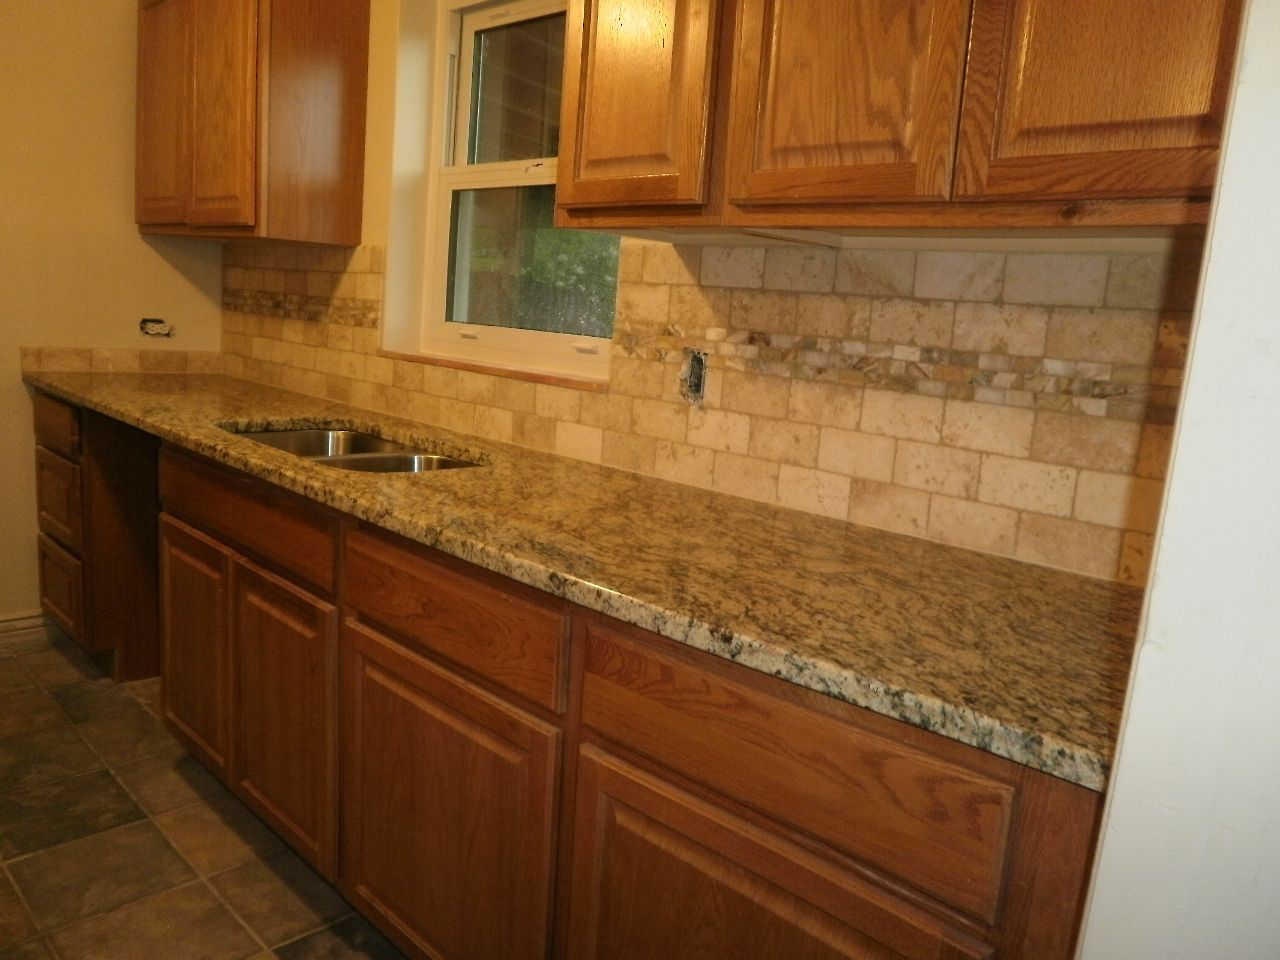 kitchen backsplash ideas | granite countertops backsplash ideas